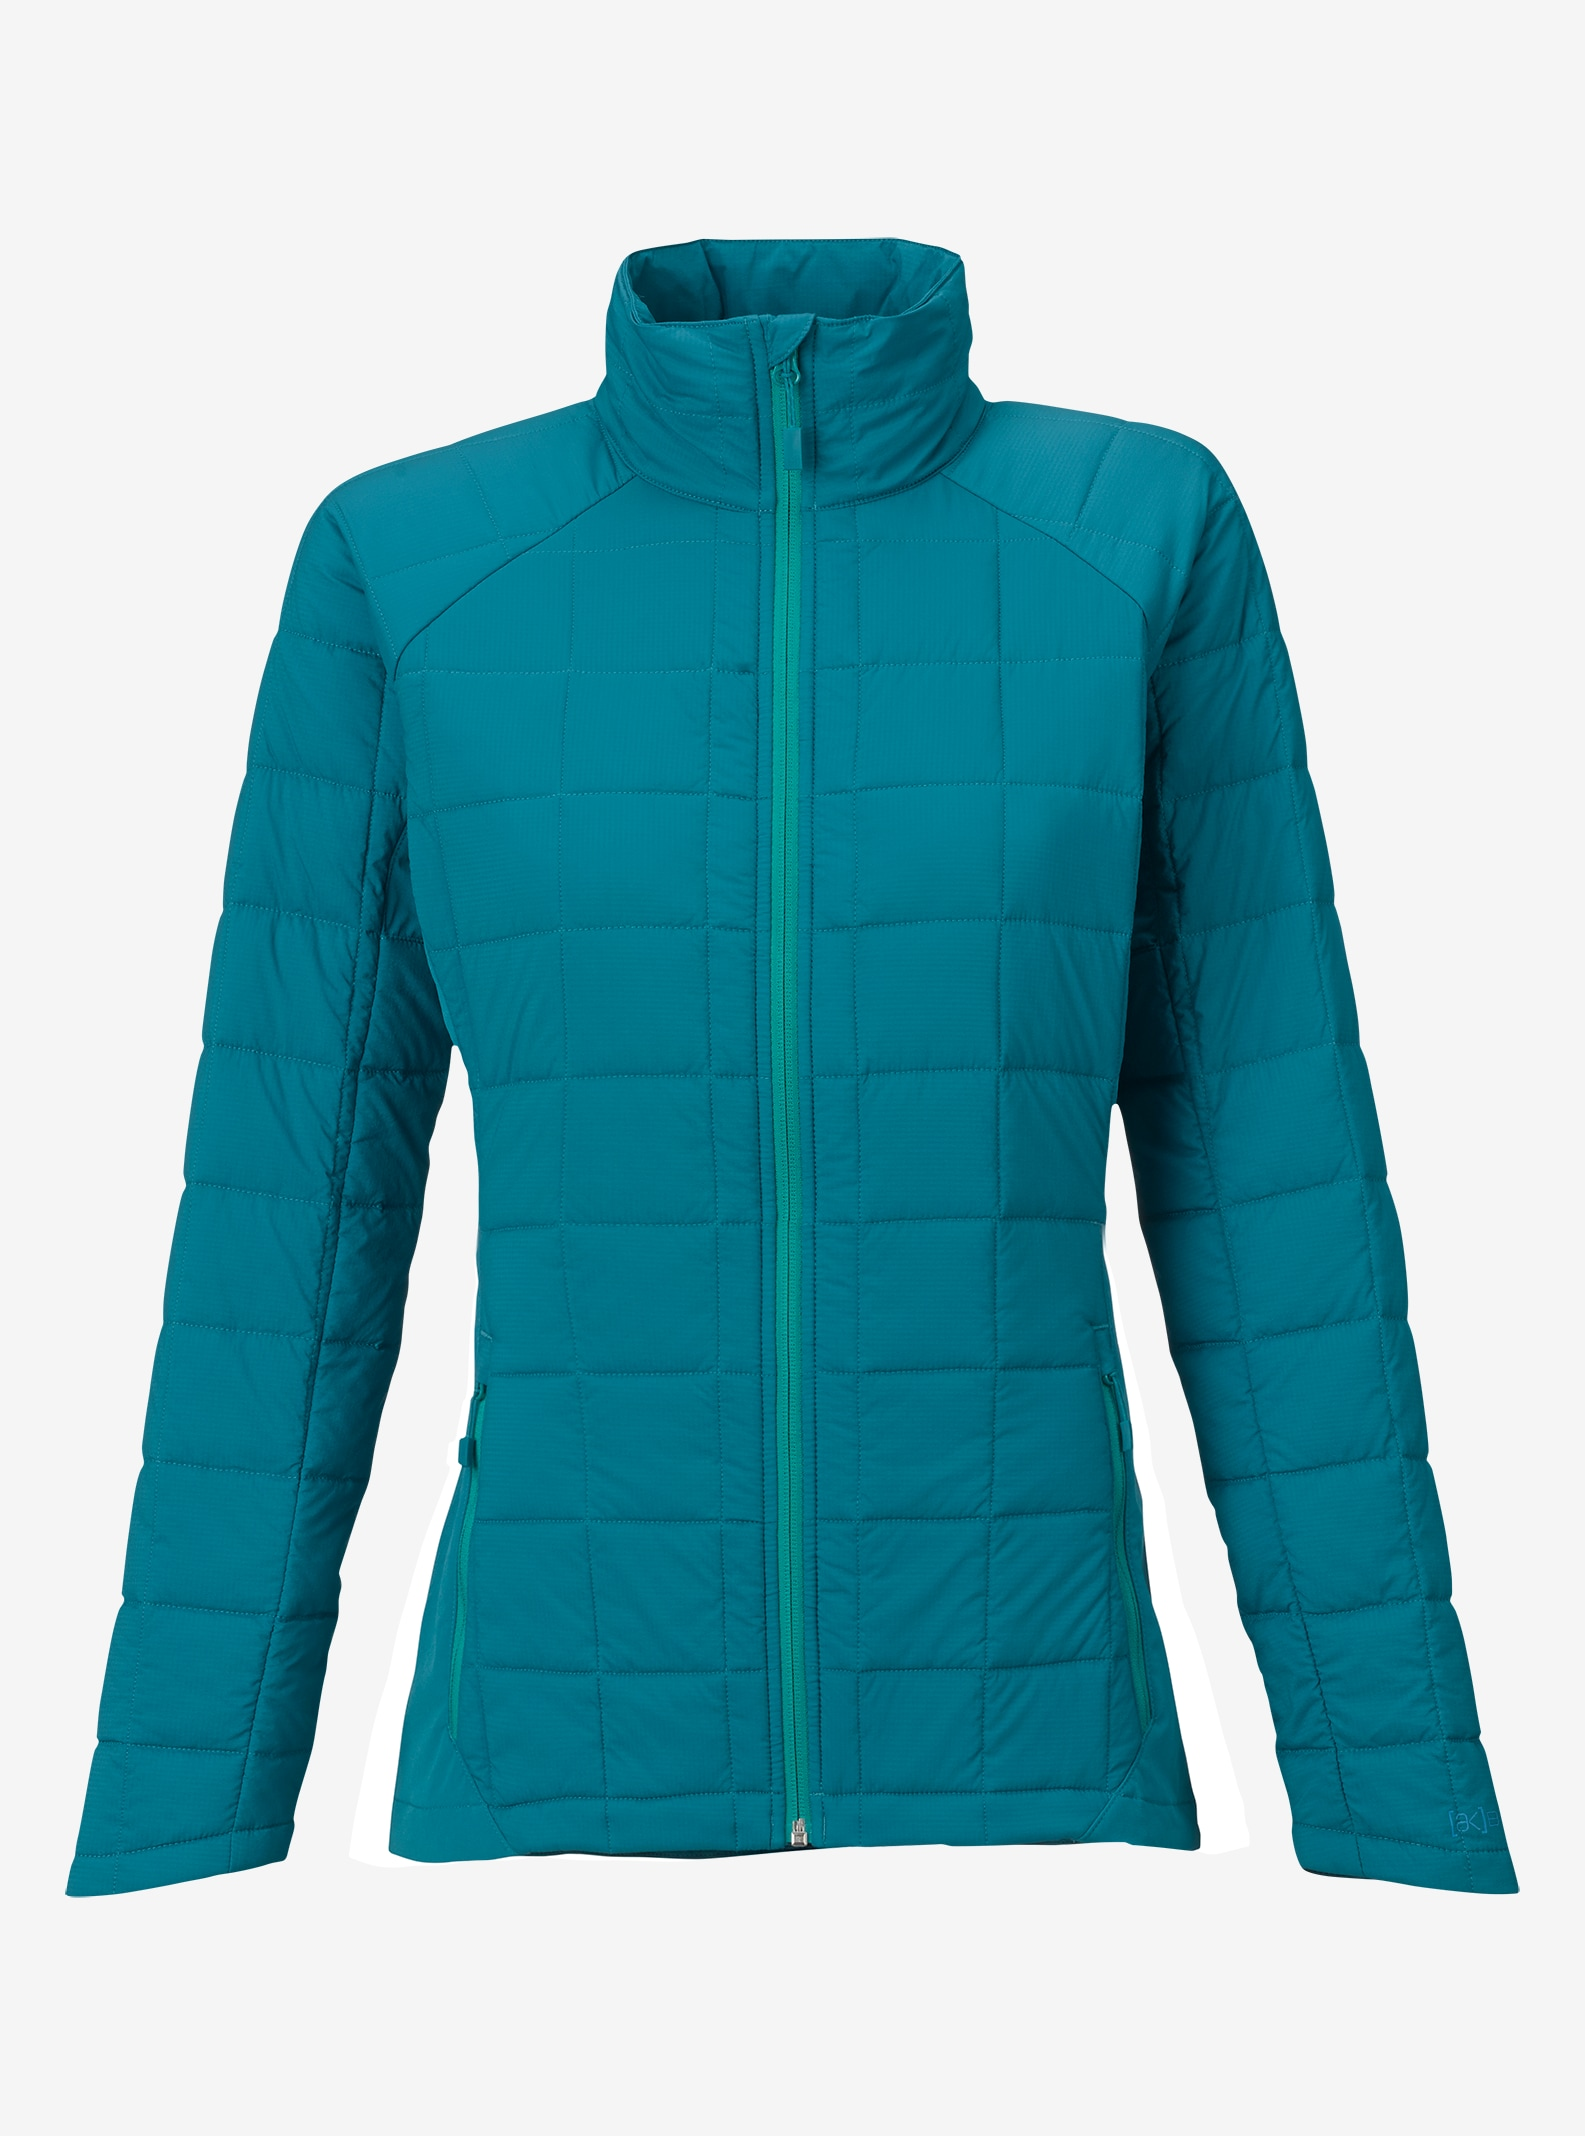 Women's Burton [ak] Women's Helium Insulator Jacket shown in Harbor